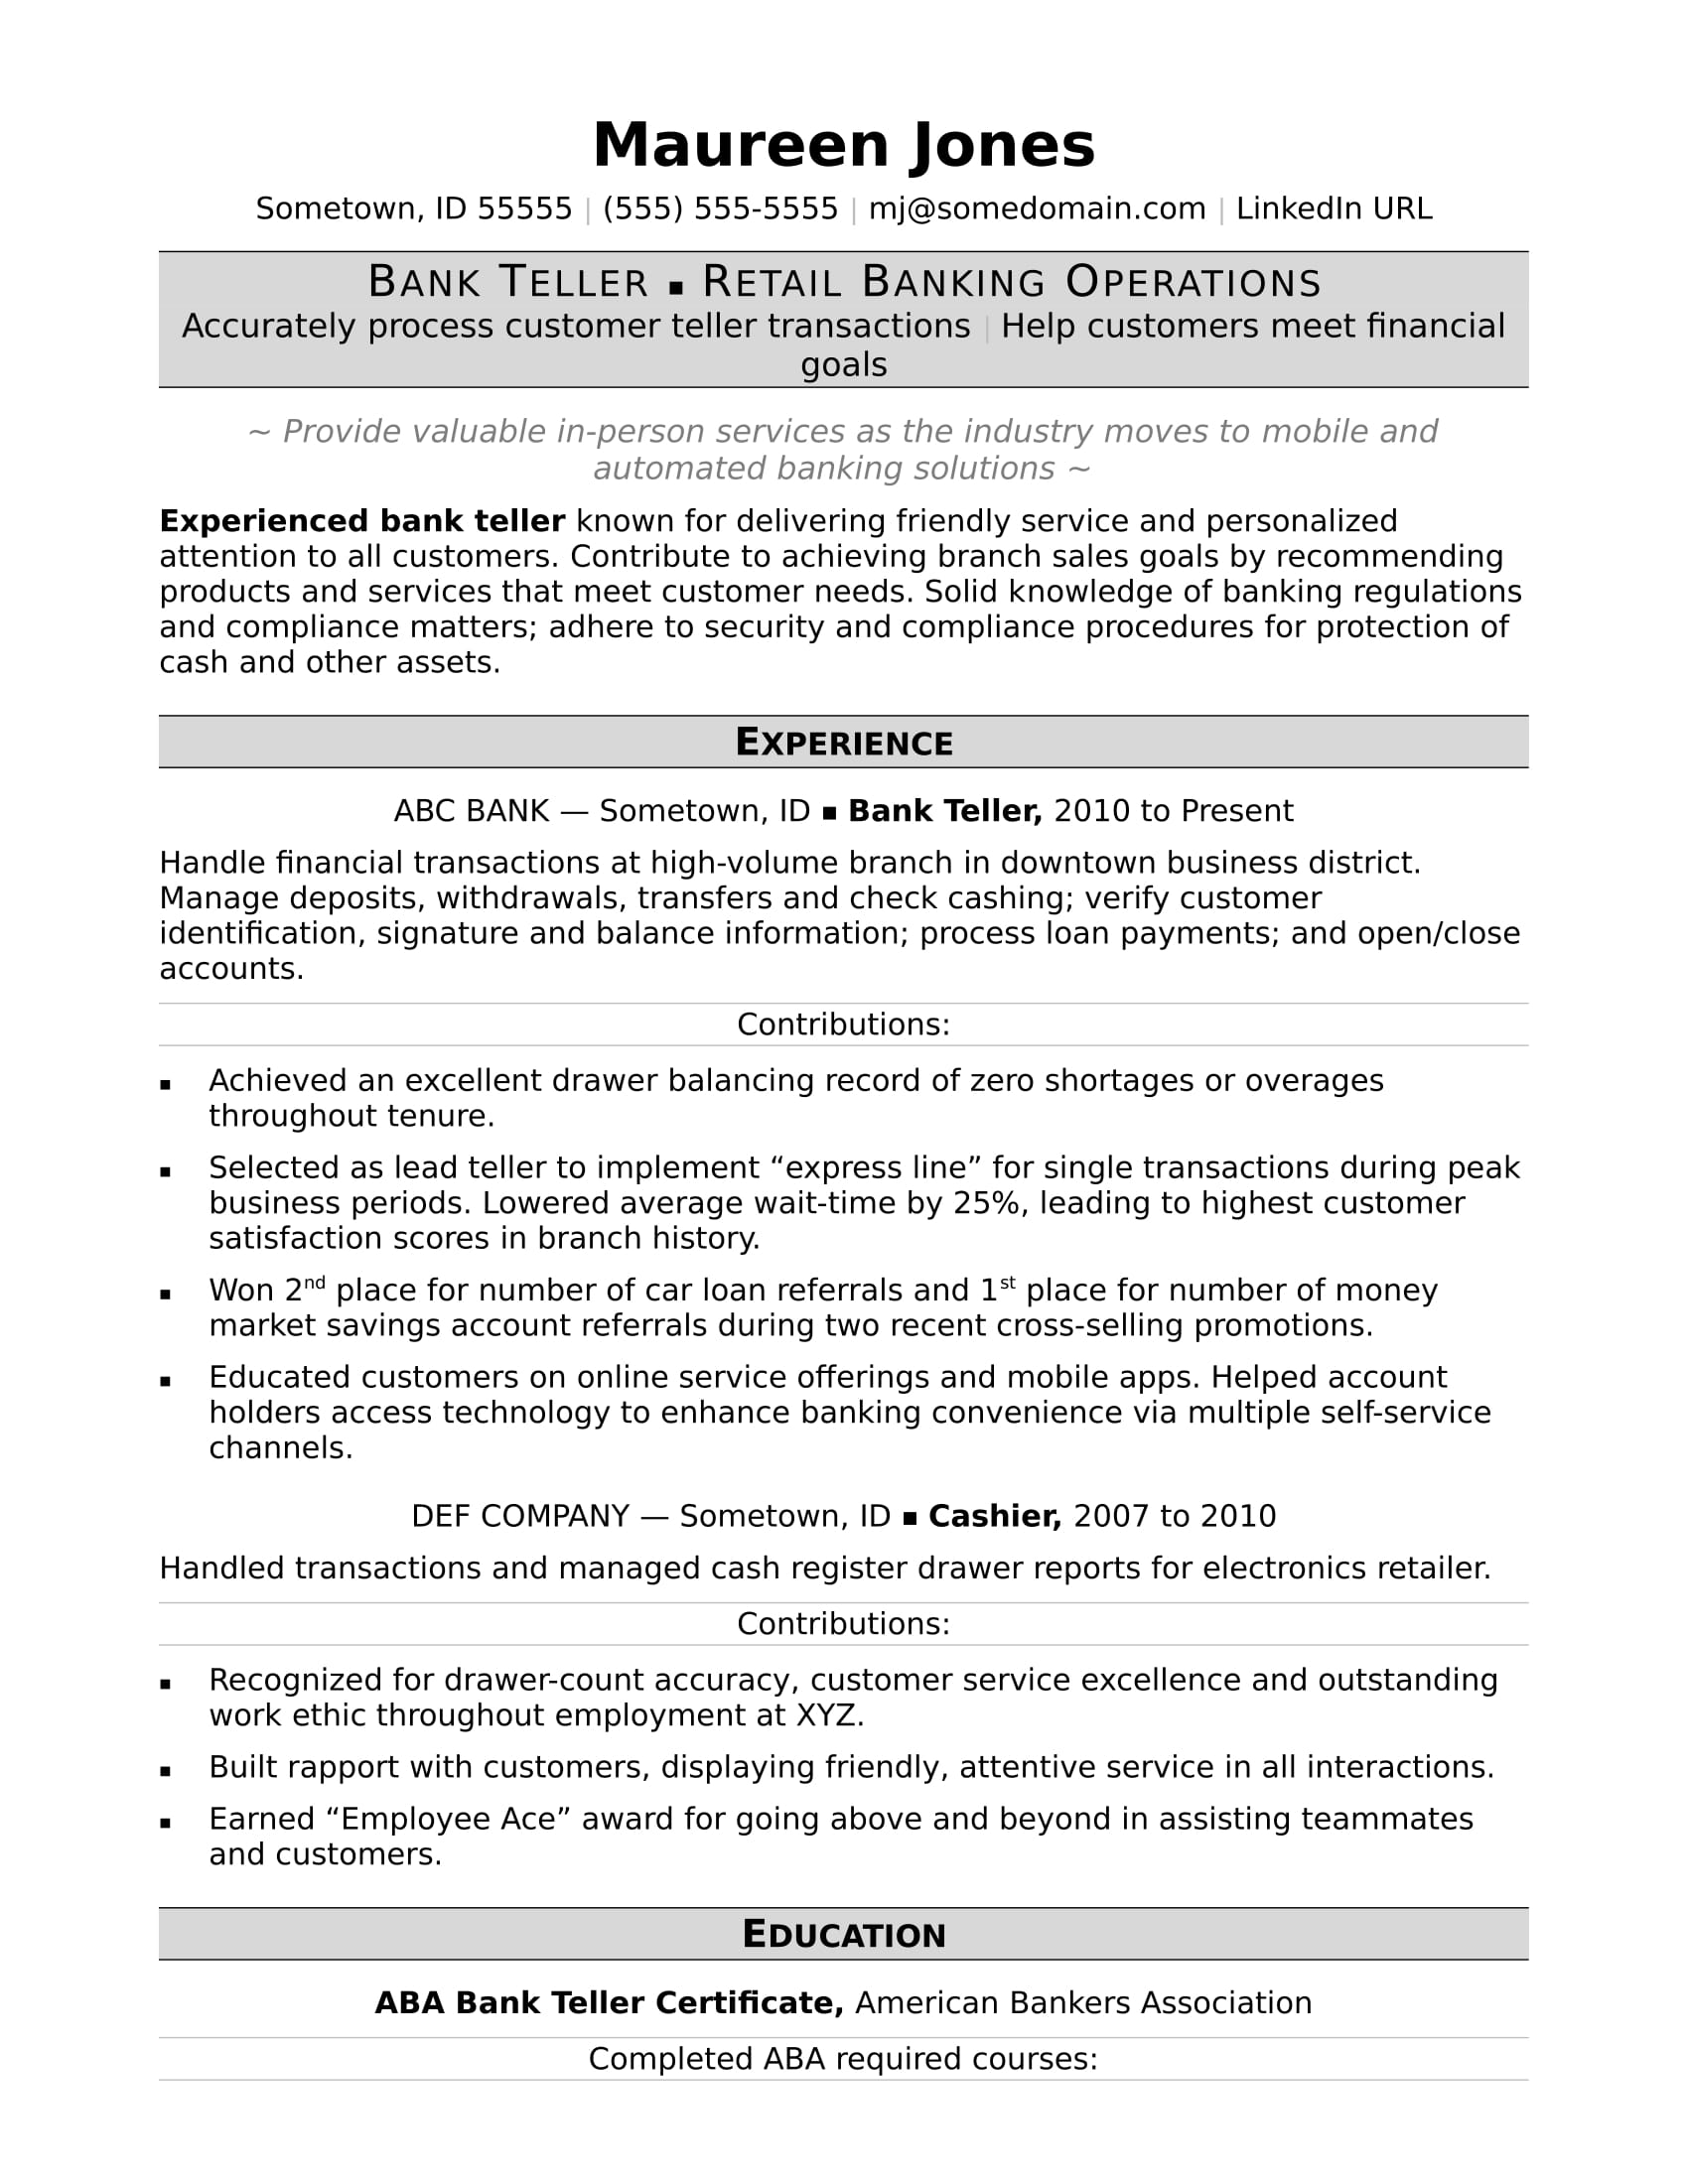 Superior Bank Teller Resume Sample  Bank Teller Resume Description